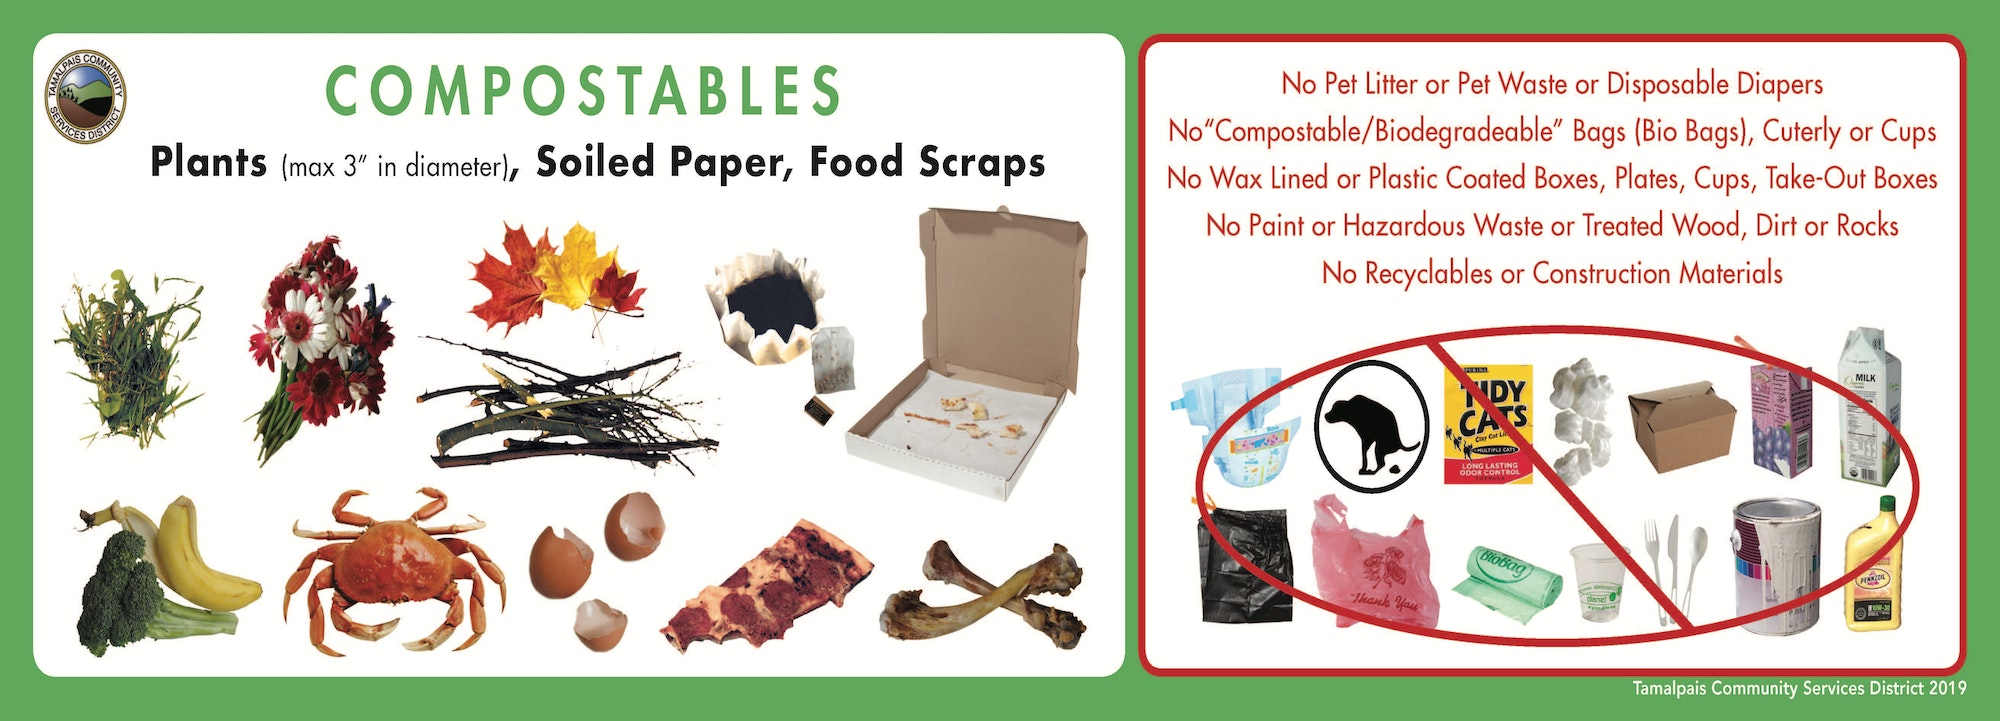 Compostables Sticker